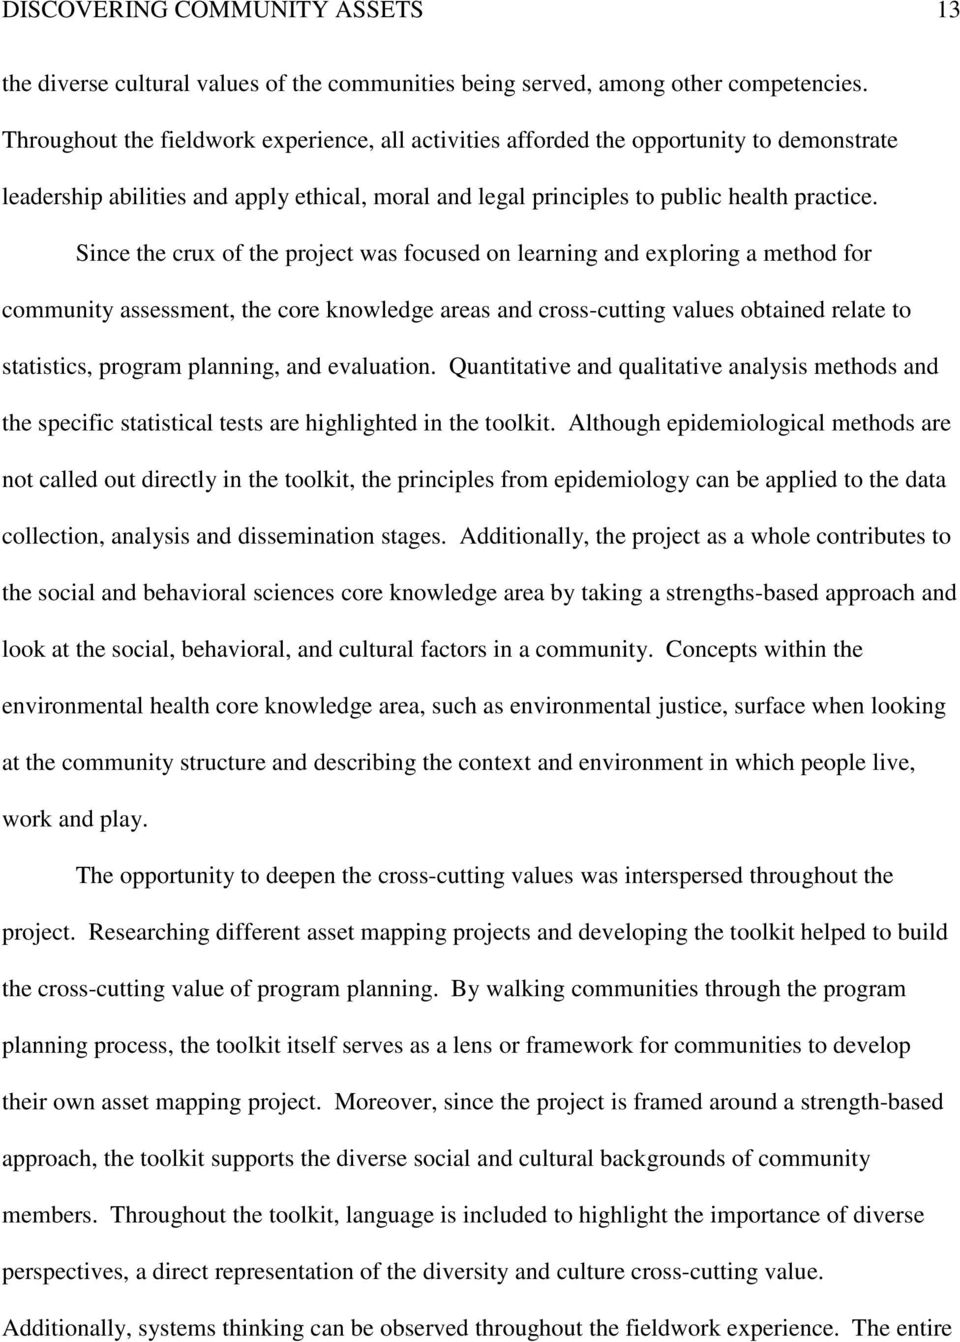 Since the crux of the project was focused on learning and exploring a method for community assessment, the core knowledge areas and cross-cutting values obtained relate to statistics, program